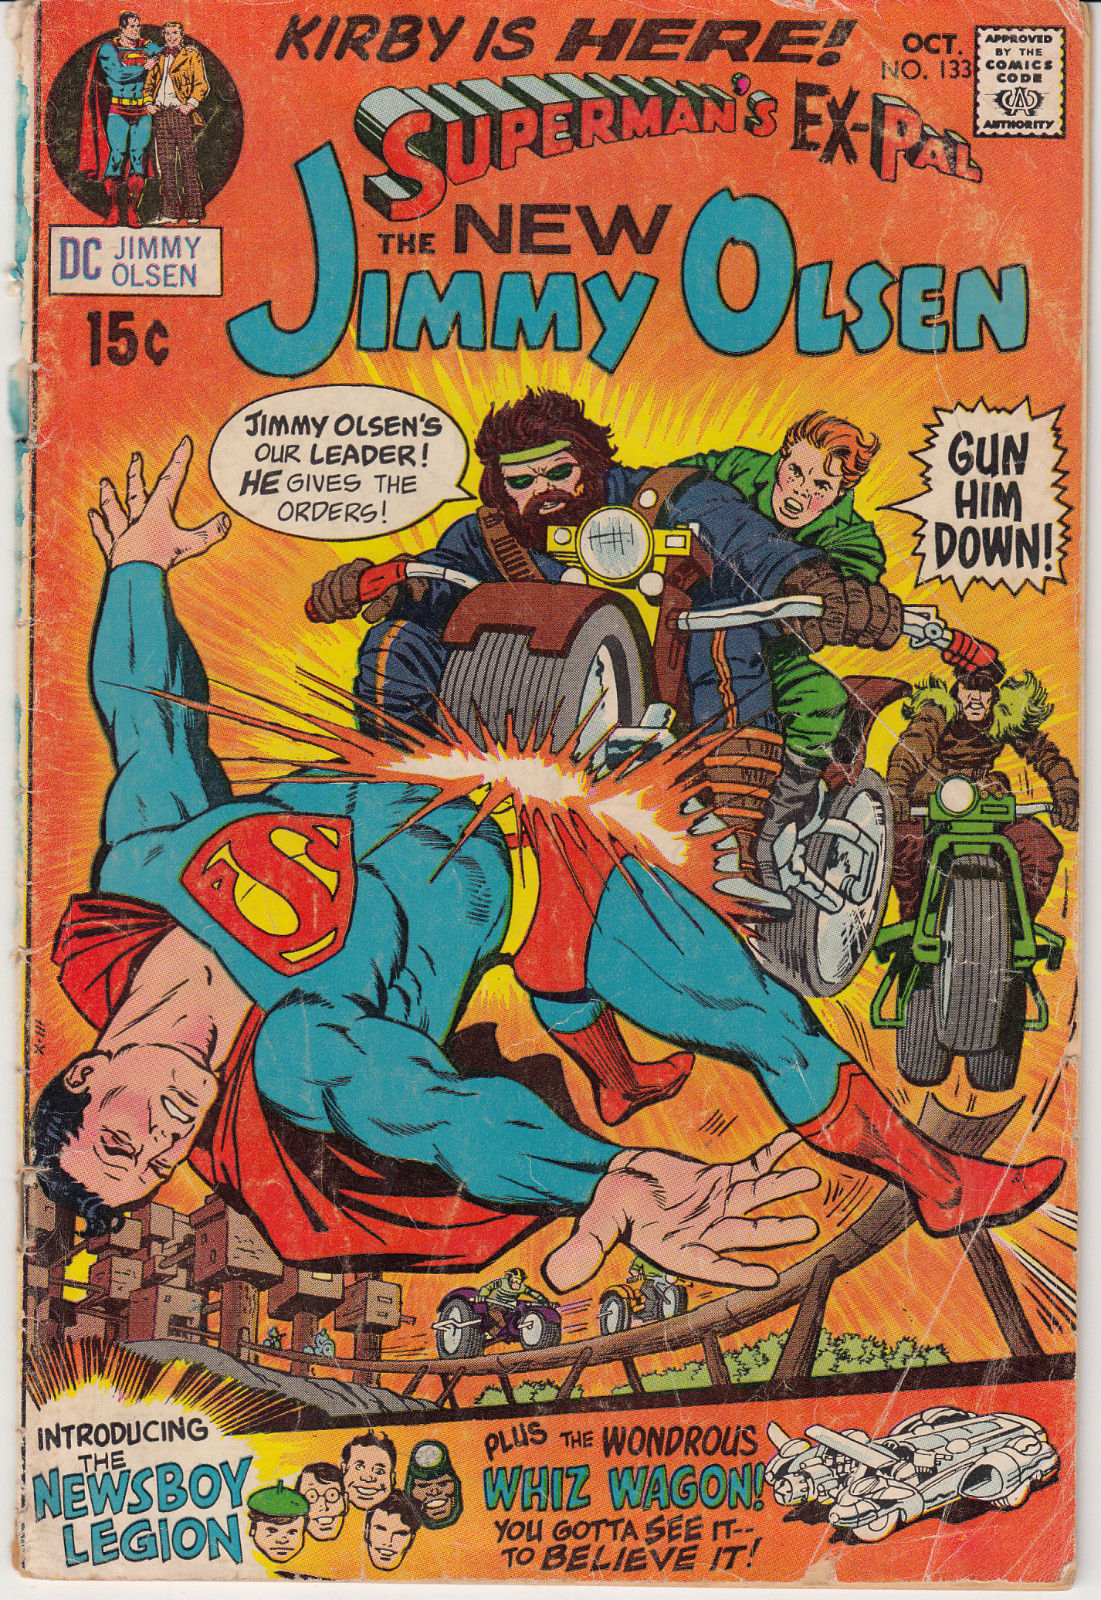 1970 DC Jimmy Olsen Superman Ex-Pal The New Jimmy Olsen #133